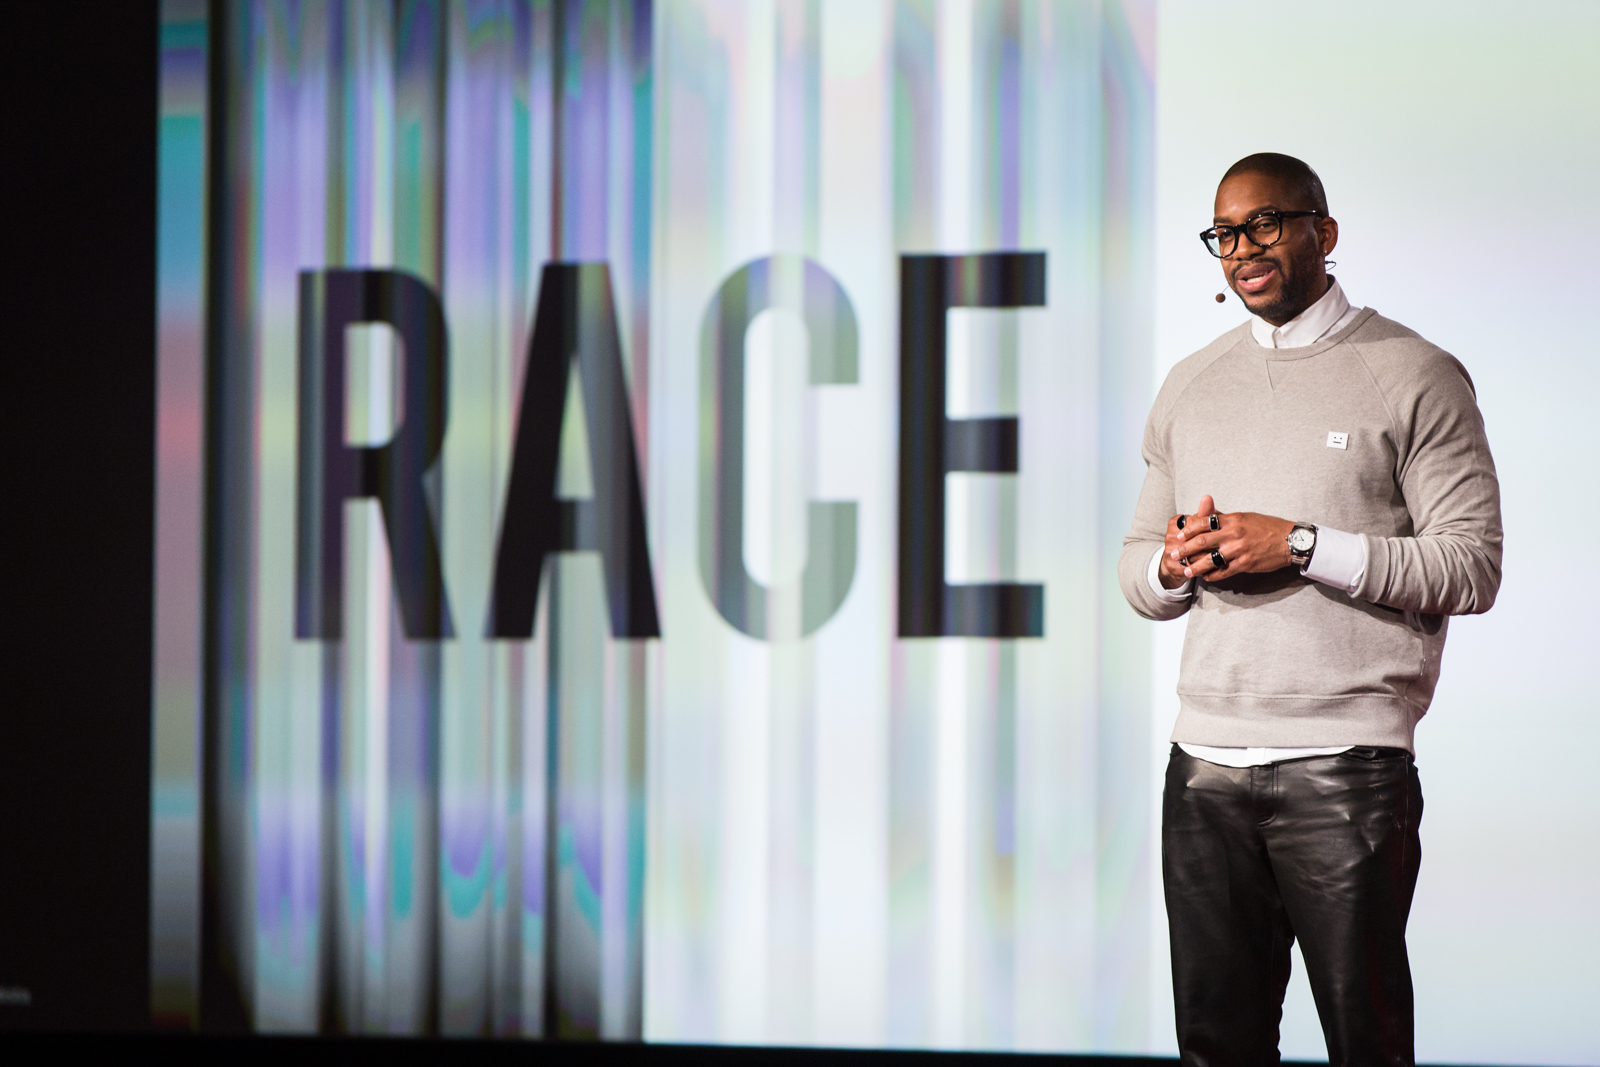 Mitchell Jackson speaks at TED2016 - Dream, February 15-19, 2016, Vancouver Convention Center, Vancouver, Canada. Photo: Ryan Lash / TED